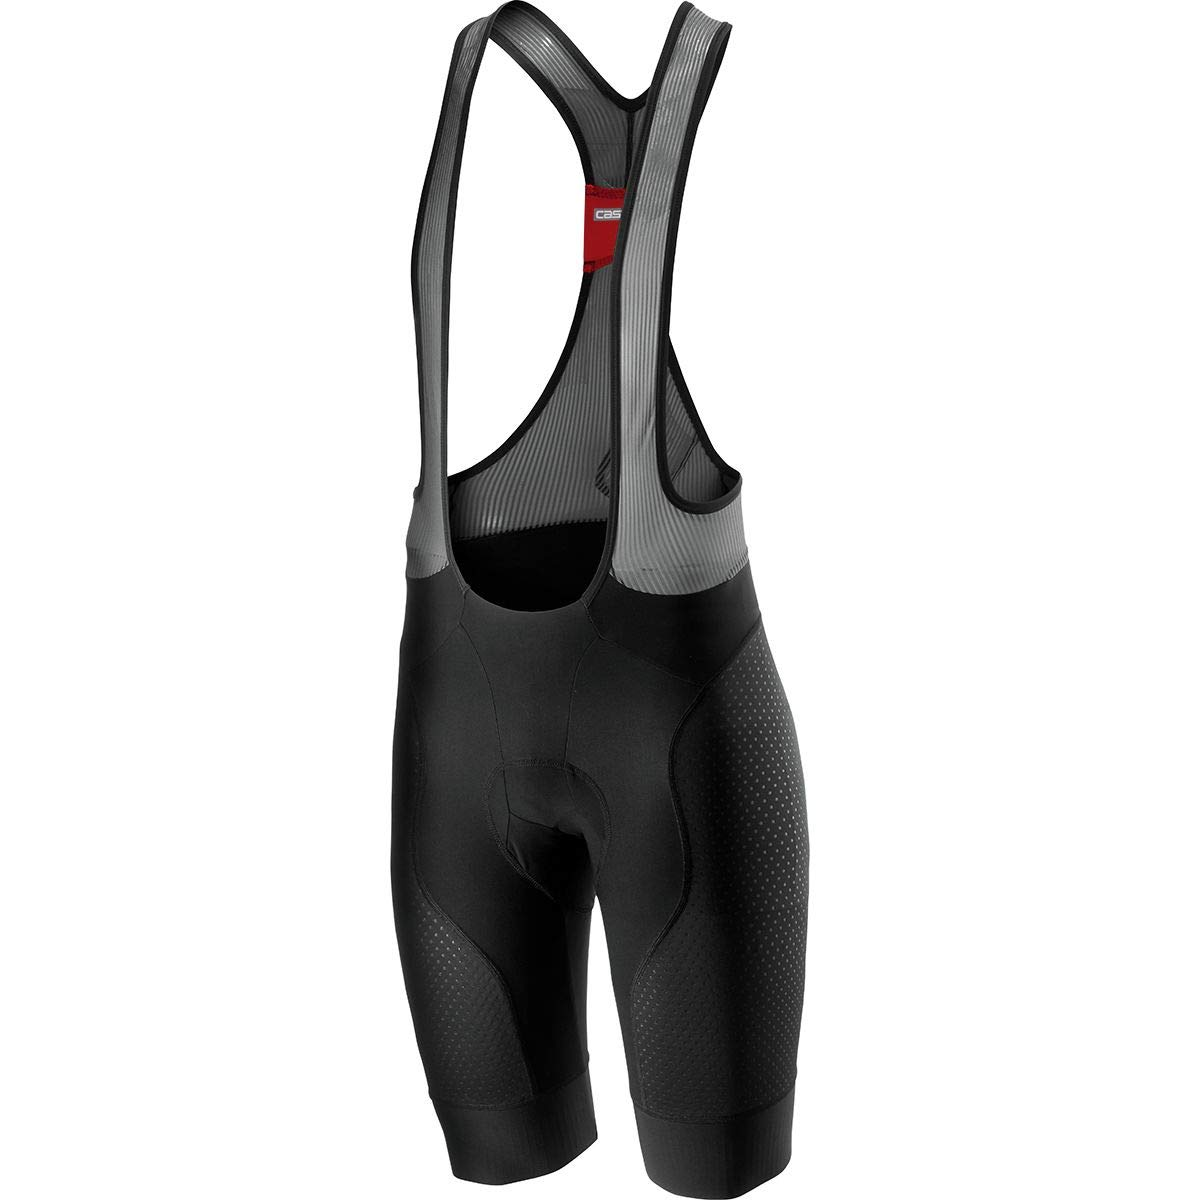 Castelli Men's Free Aero Race 4 Bibshort (Black, Small)